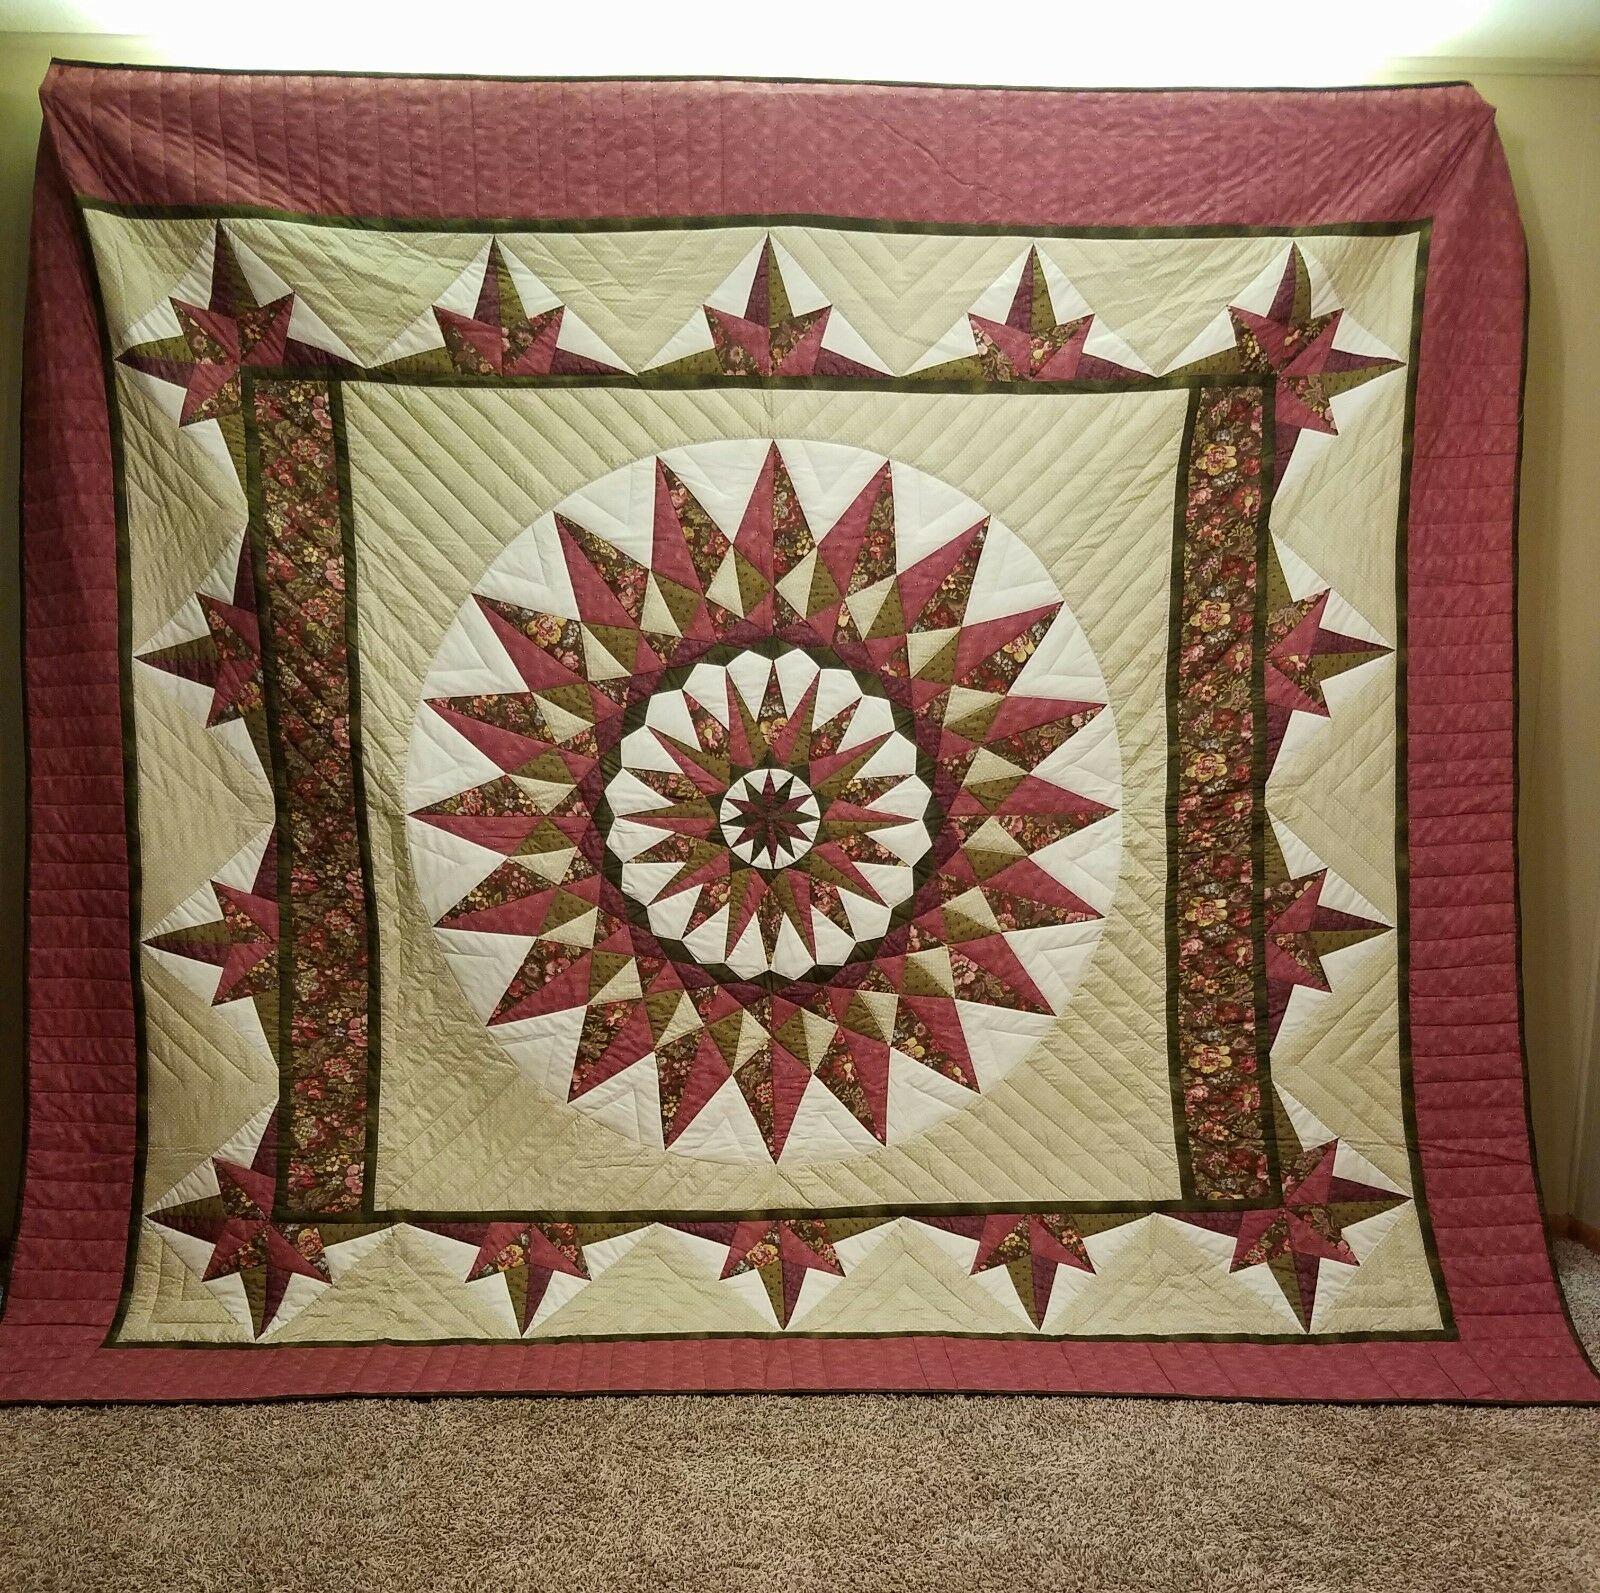 Giant Dahlia Compass   QUILT  Handmade by Amish-Mennonite Seamstresses